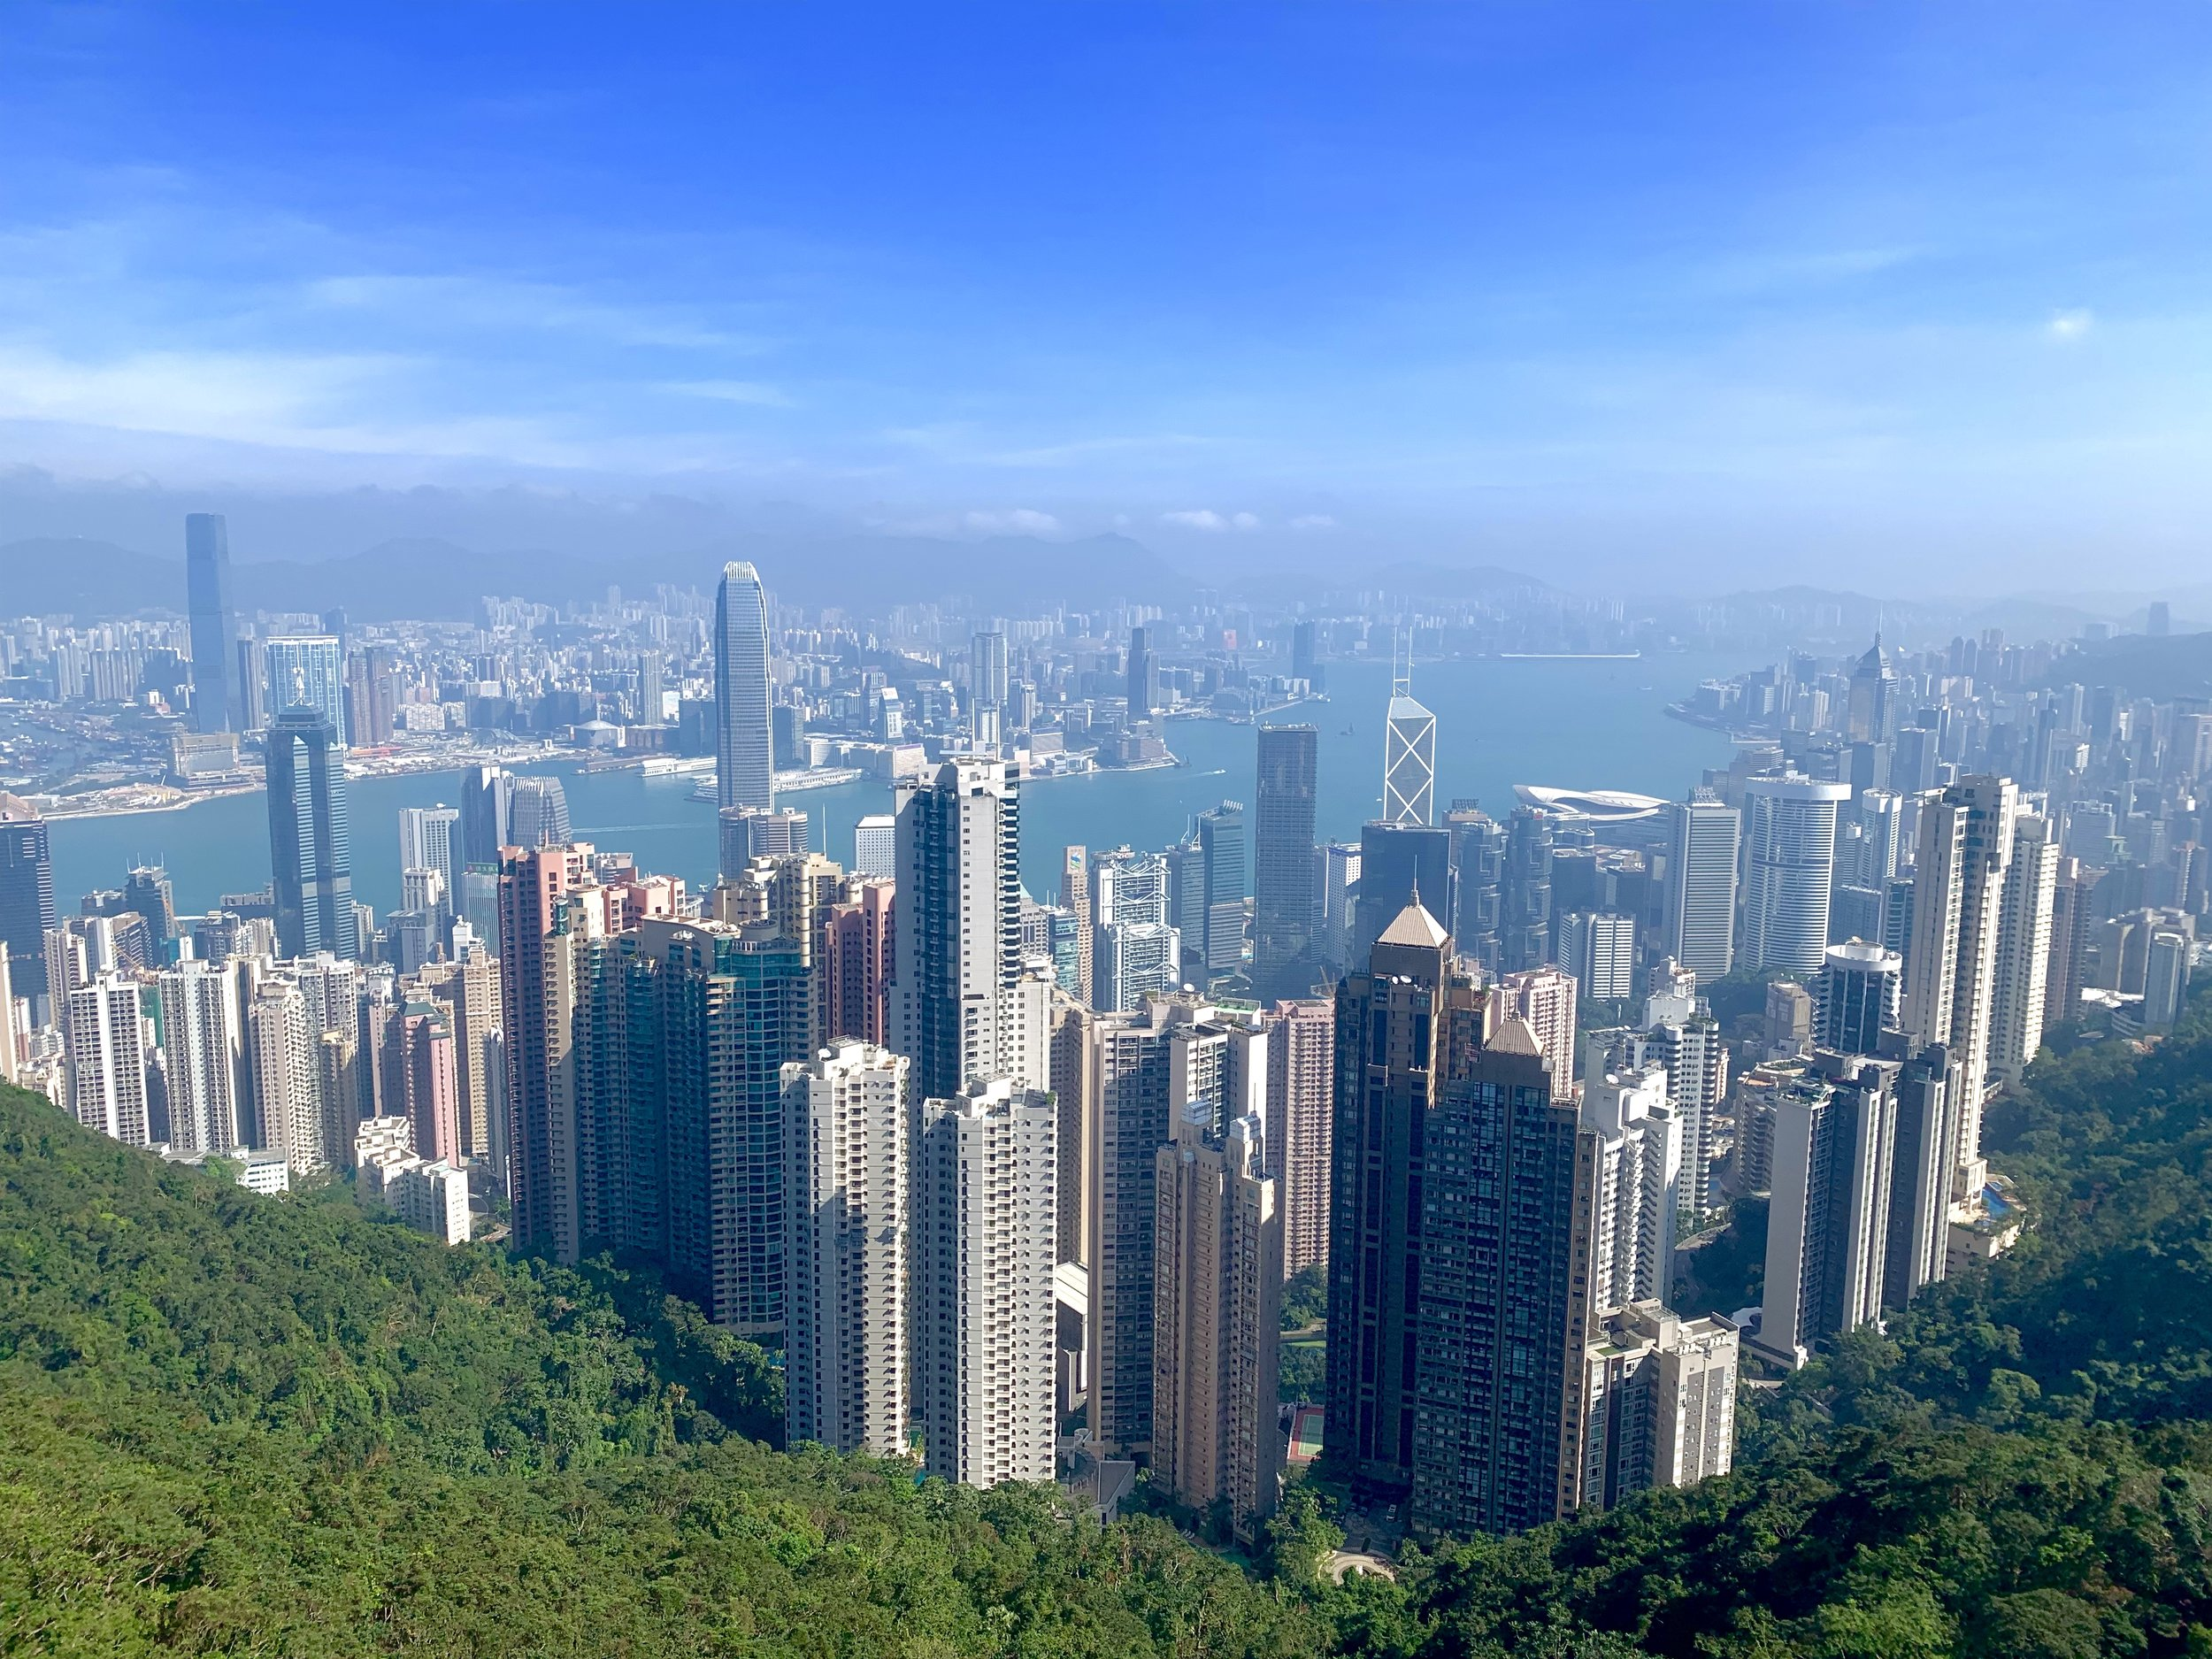 Unbelievable views from the highest peak in Hong Kong Island at 1,818 feet